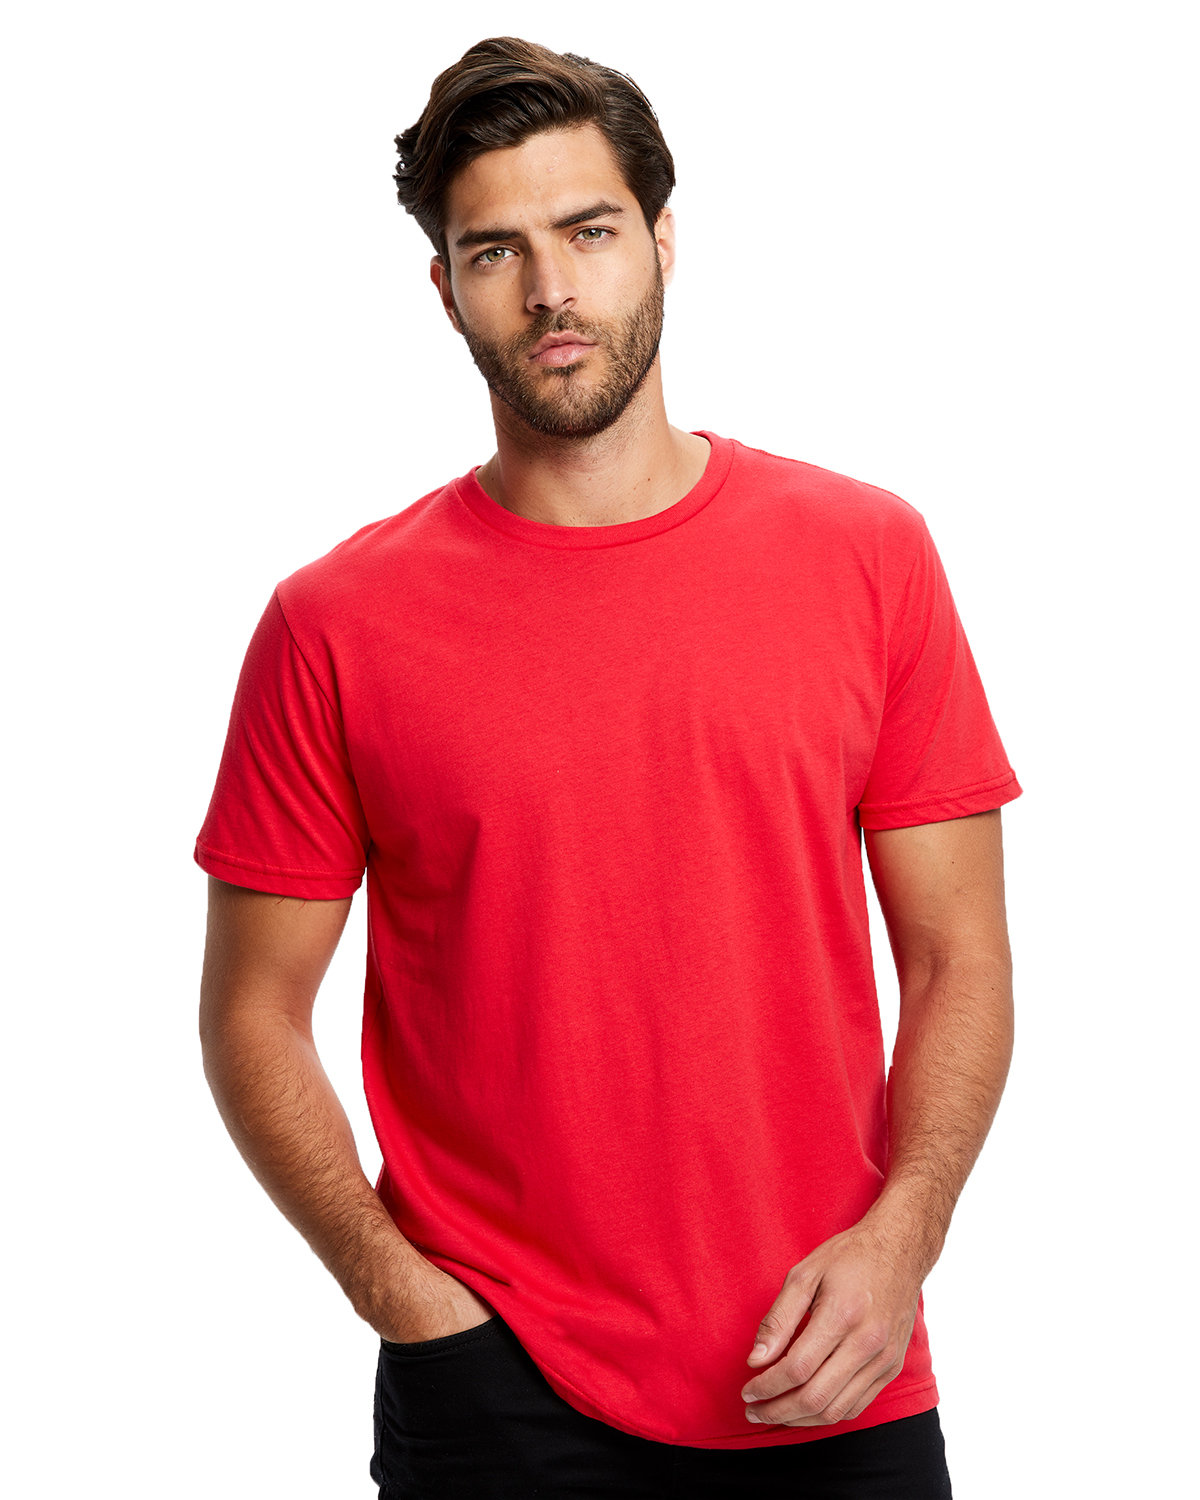 US Blanks Men's Made in USA Short Sleeve Crew T-Shirt RED